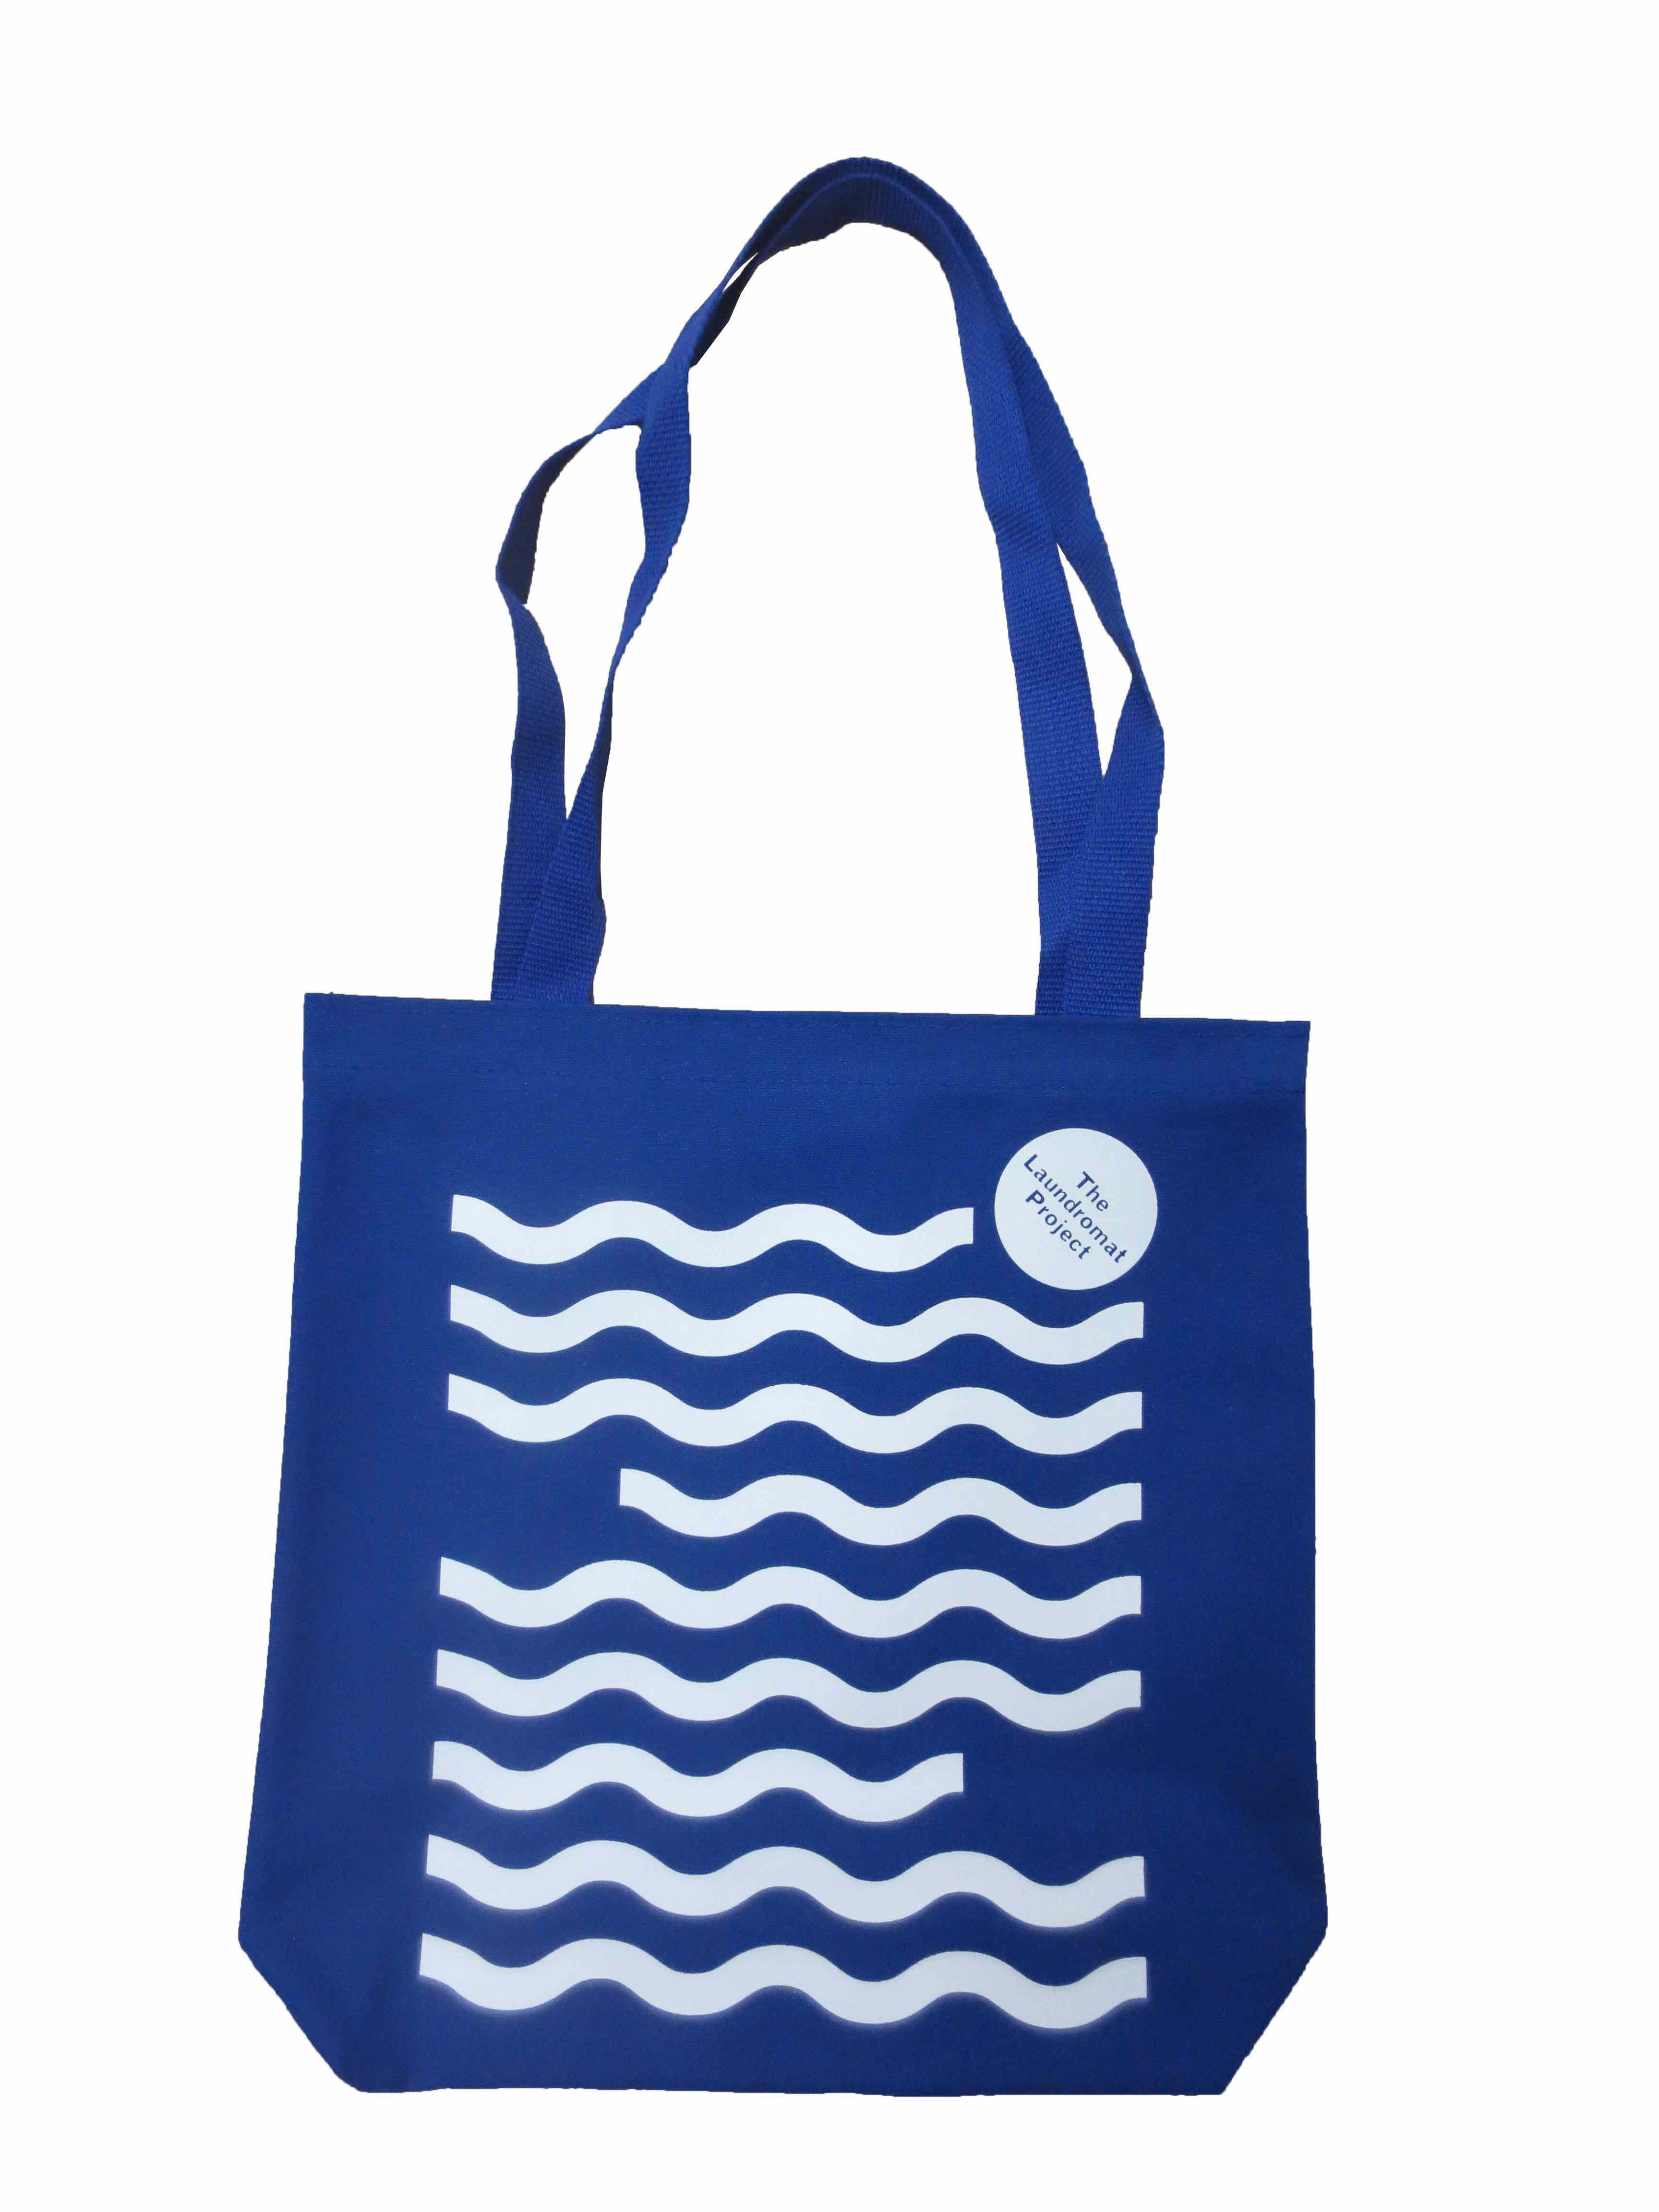 New Tote Bags Available Now